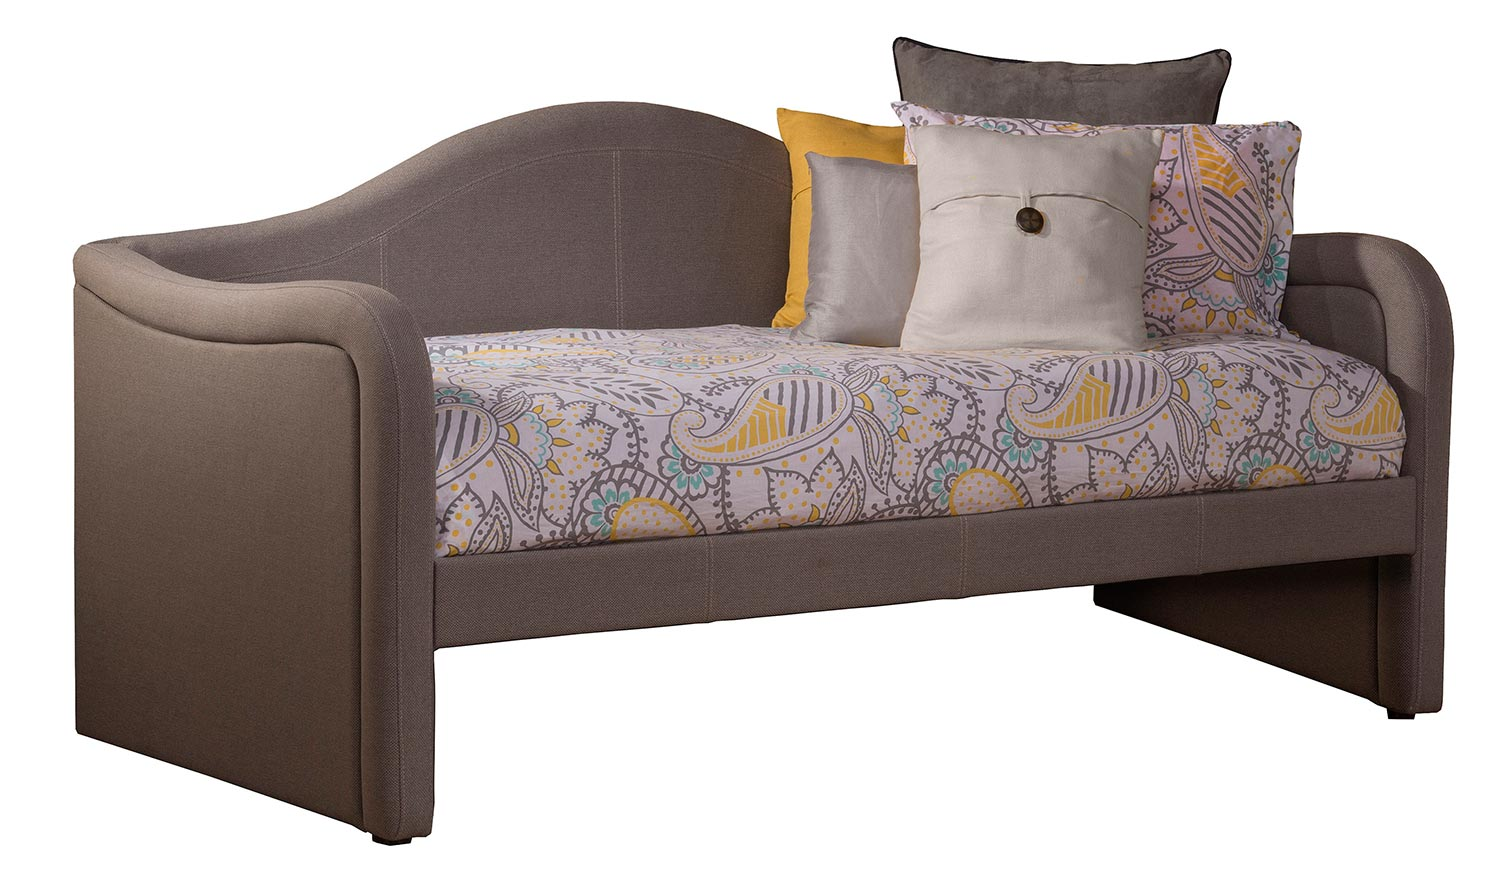 Hillsdale Porter Daybed